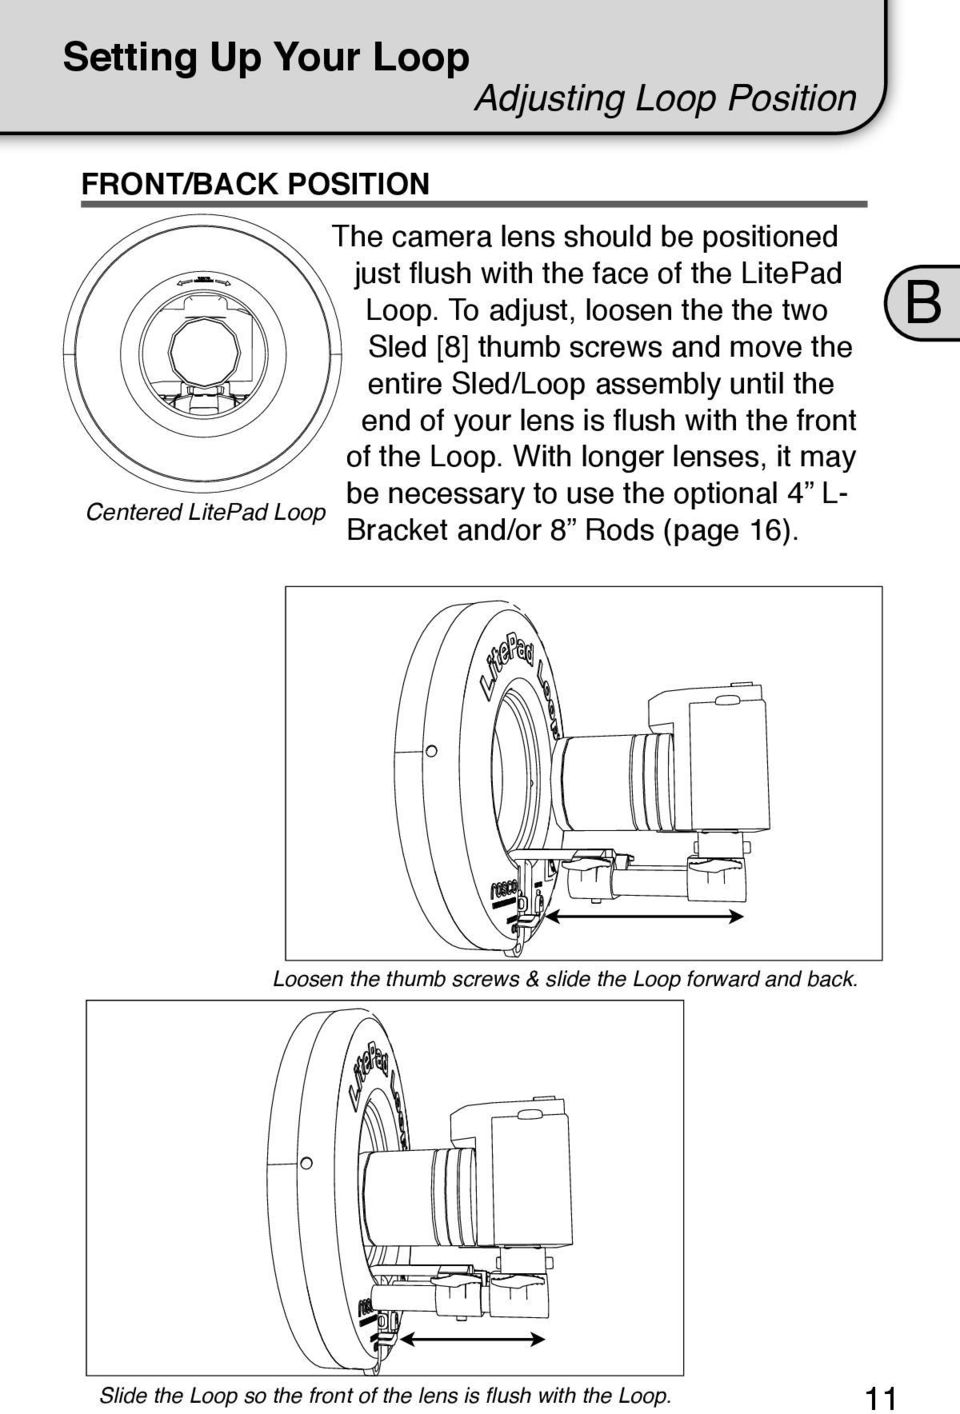 To adjust, loosen the the two Sled [8] thumb screws and move the entire Sled/Loop assembly until the end of your lens is flush with the